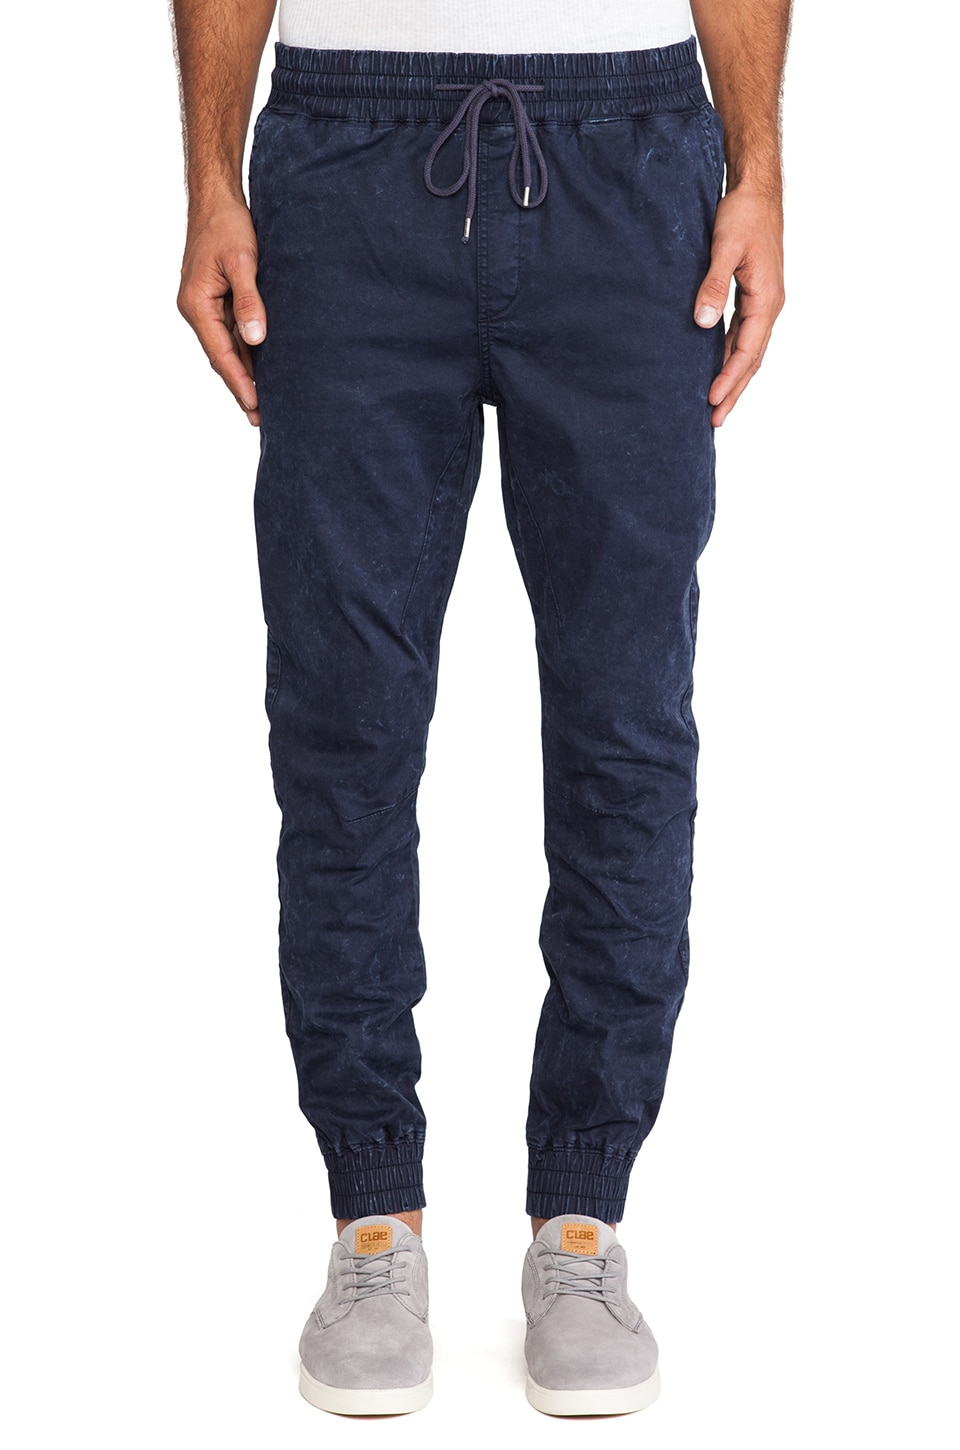 Globe Goodstock Jogger Pant in Acid Blue